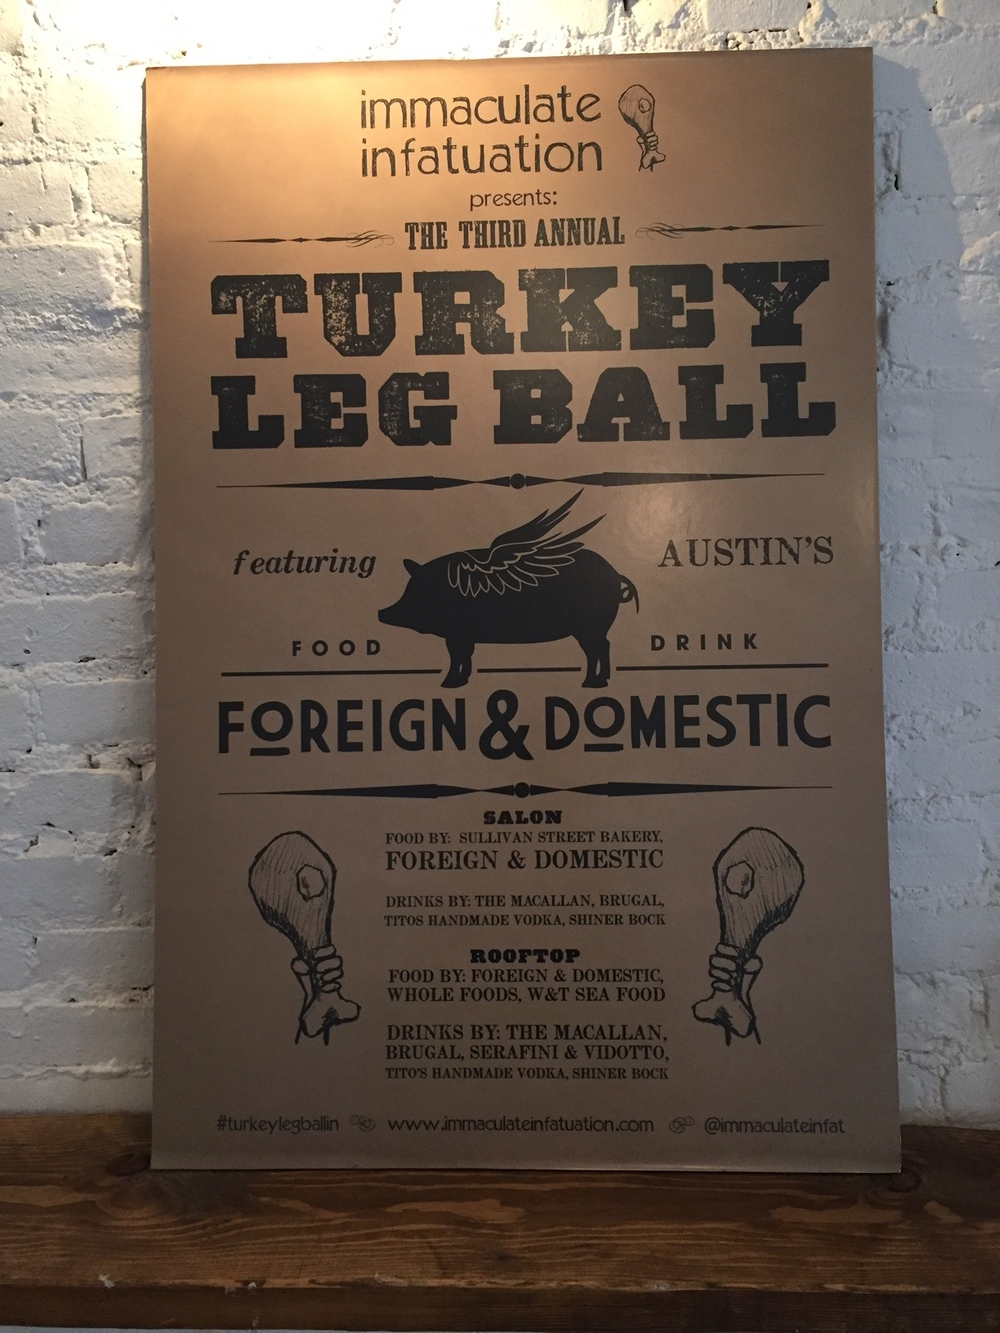 A Turkey Leg Ball Poster From The Early Days